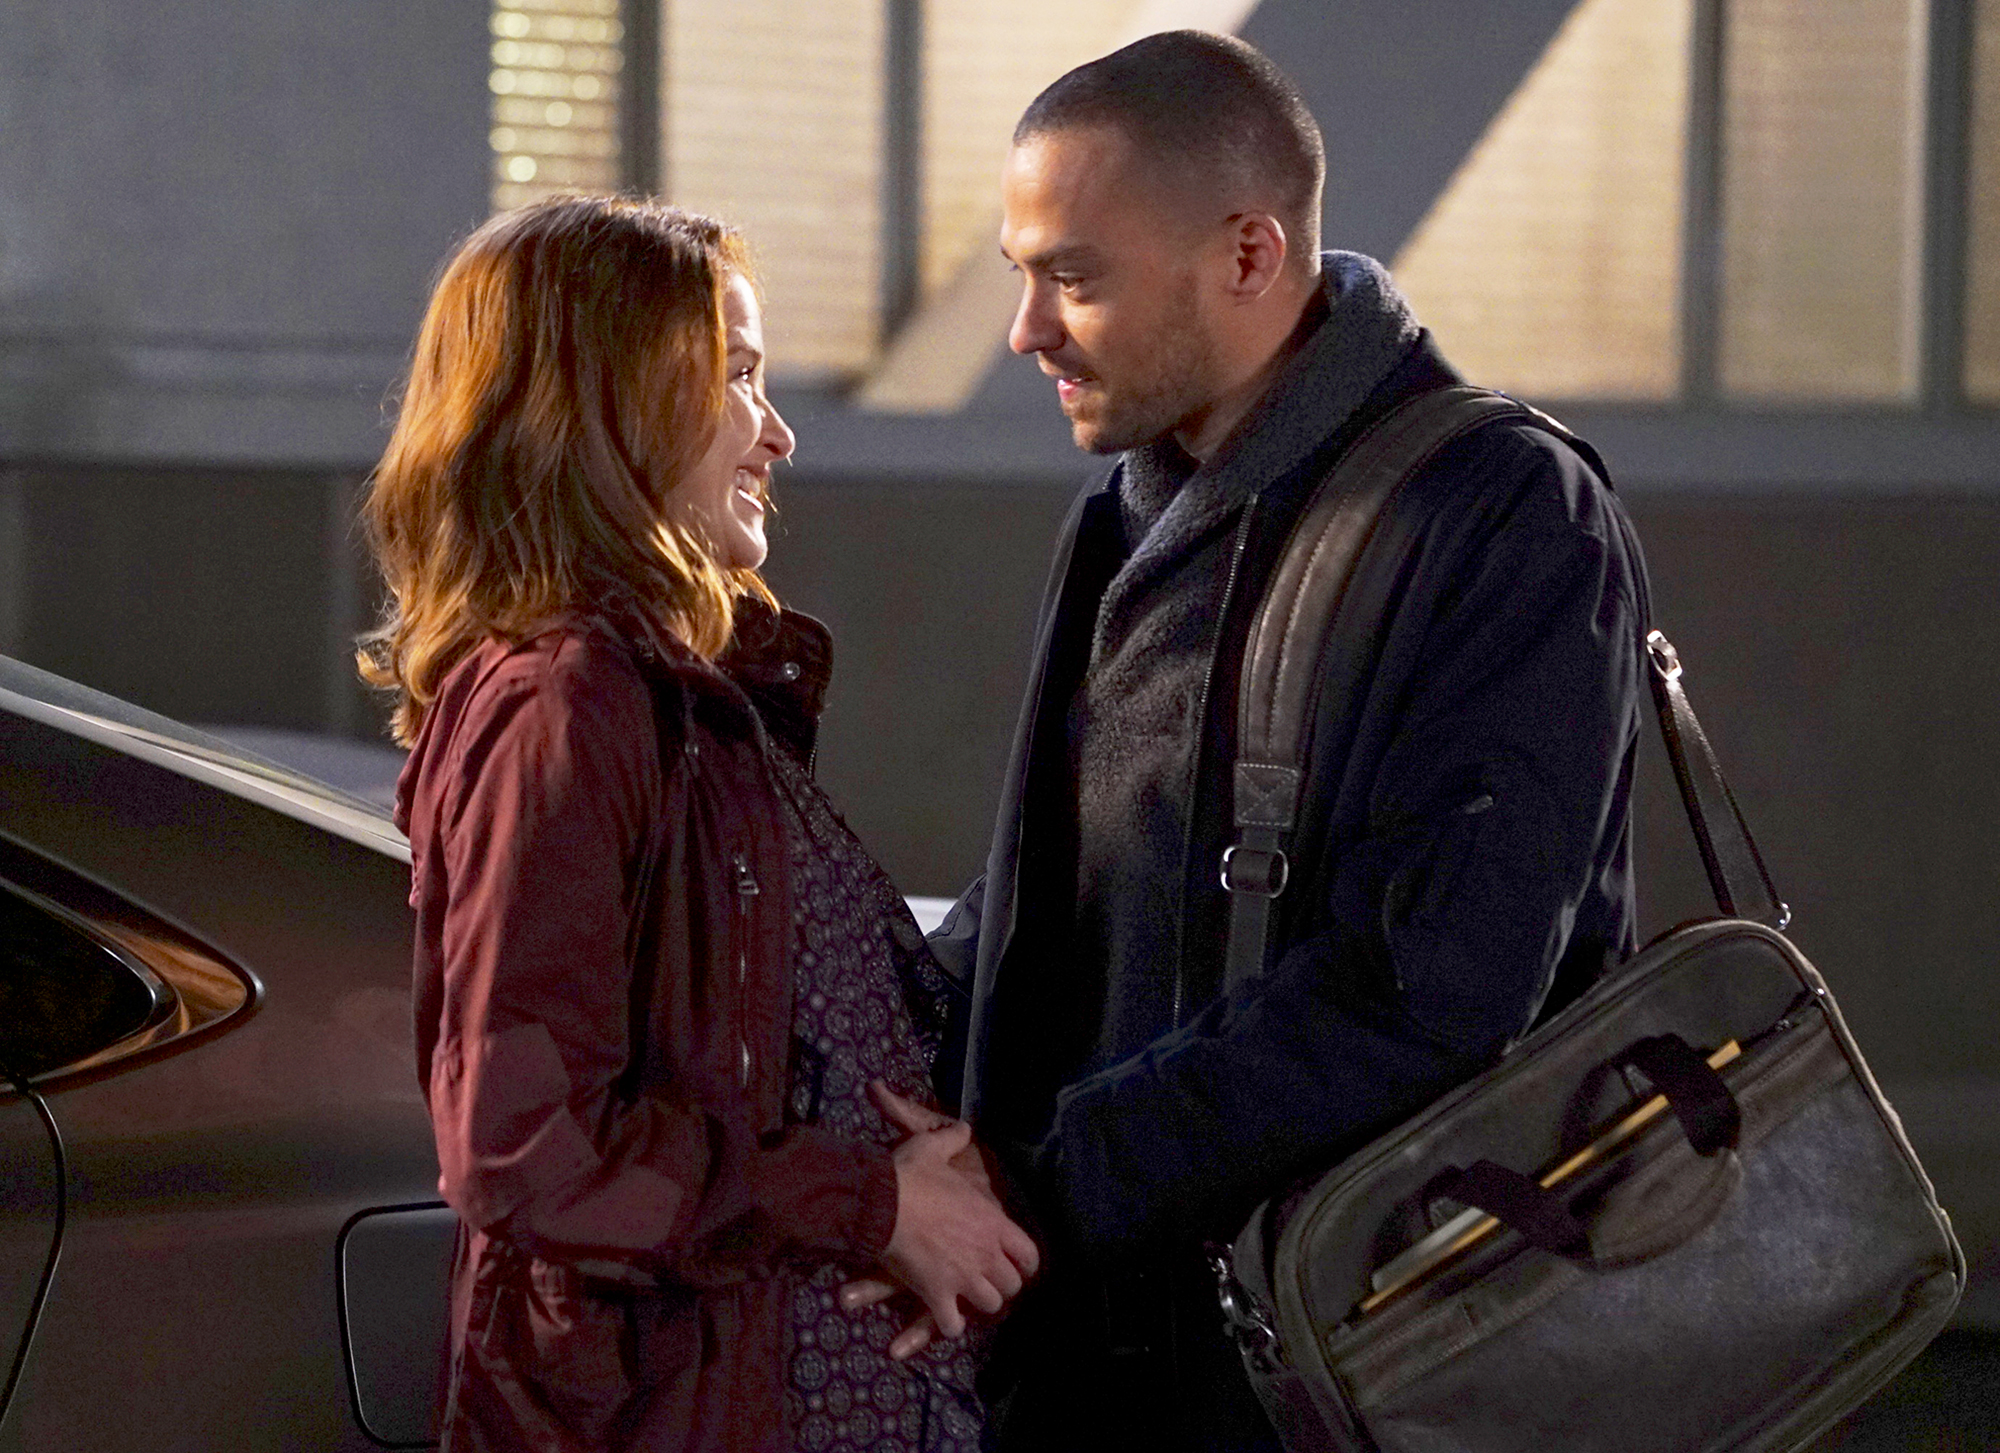 Jesse Williams and Sarah Drew on 'Grey's Anatomy' Gallery - April's pregnancy scare was a turning point in her and Jackson's relationship. Although Jackson was ready to marry April and raise their child together, she was relieved upon realizing that she's not expecting.